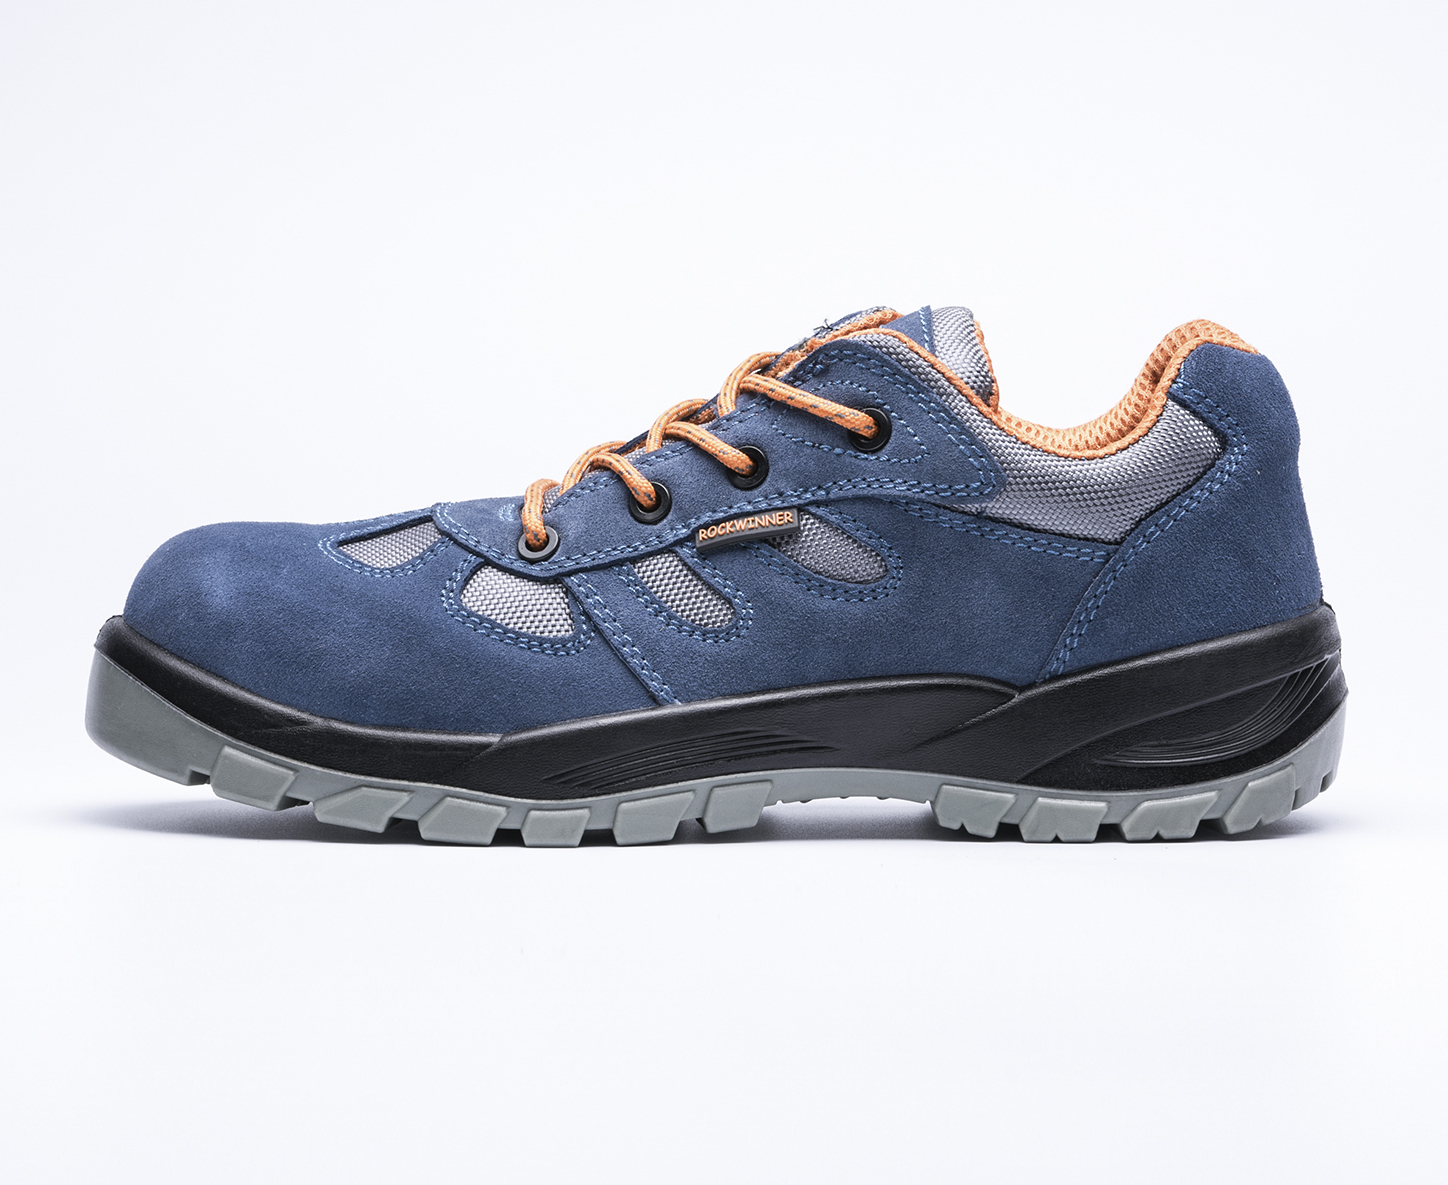 safety work shoes 6167 suede leather pu outsole